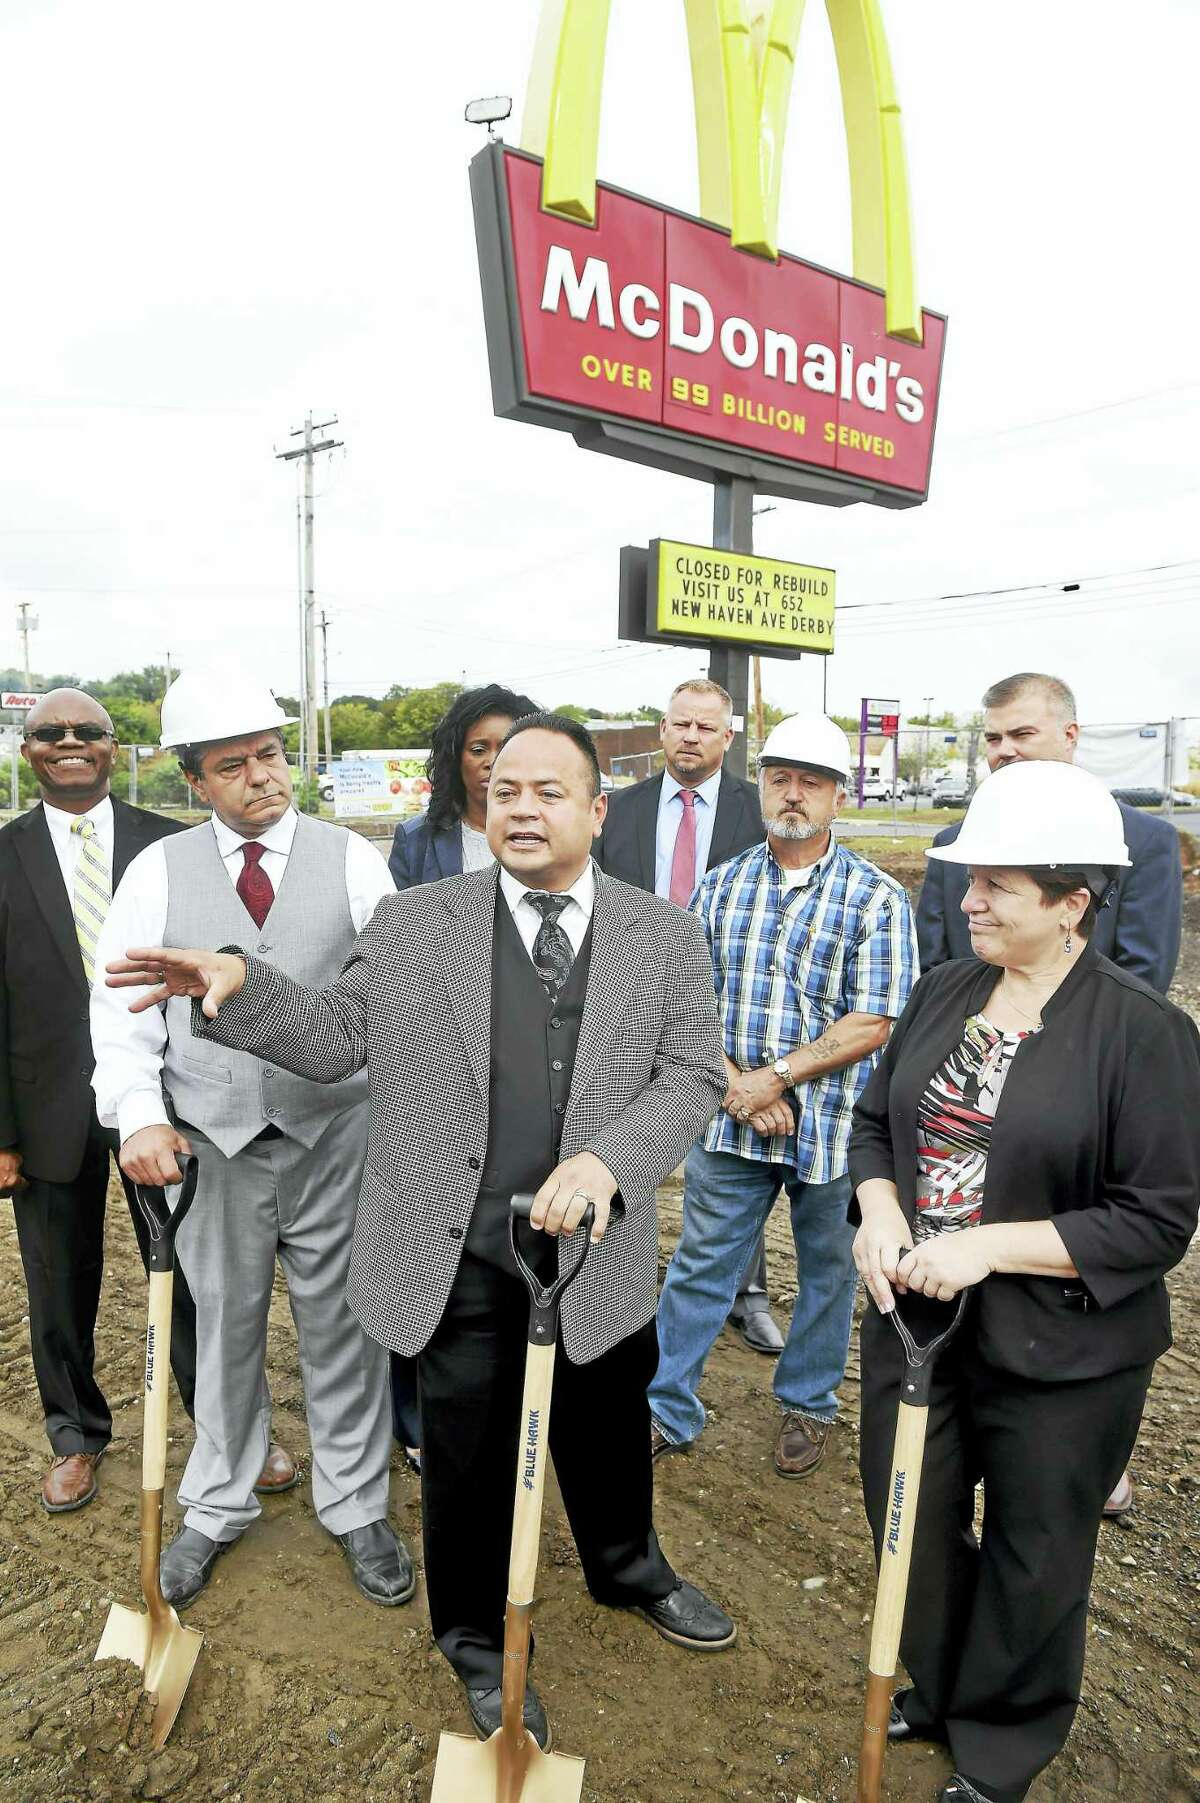 (Arnold Gold-New Haven Register) Left to right in hardhats, Ansonia Mayor David Cassetti, former Derby Mayor Anthony Staffieri and Derby Mayor Anita Dugatto listen to McDonald's owner Joe Rodriguez (center) talk about the new modern and expanded McDonald's being built at this location on Division St. in Derby during a groundbreaking ceremony on 9/27/2016.